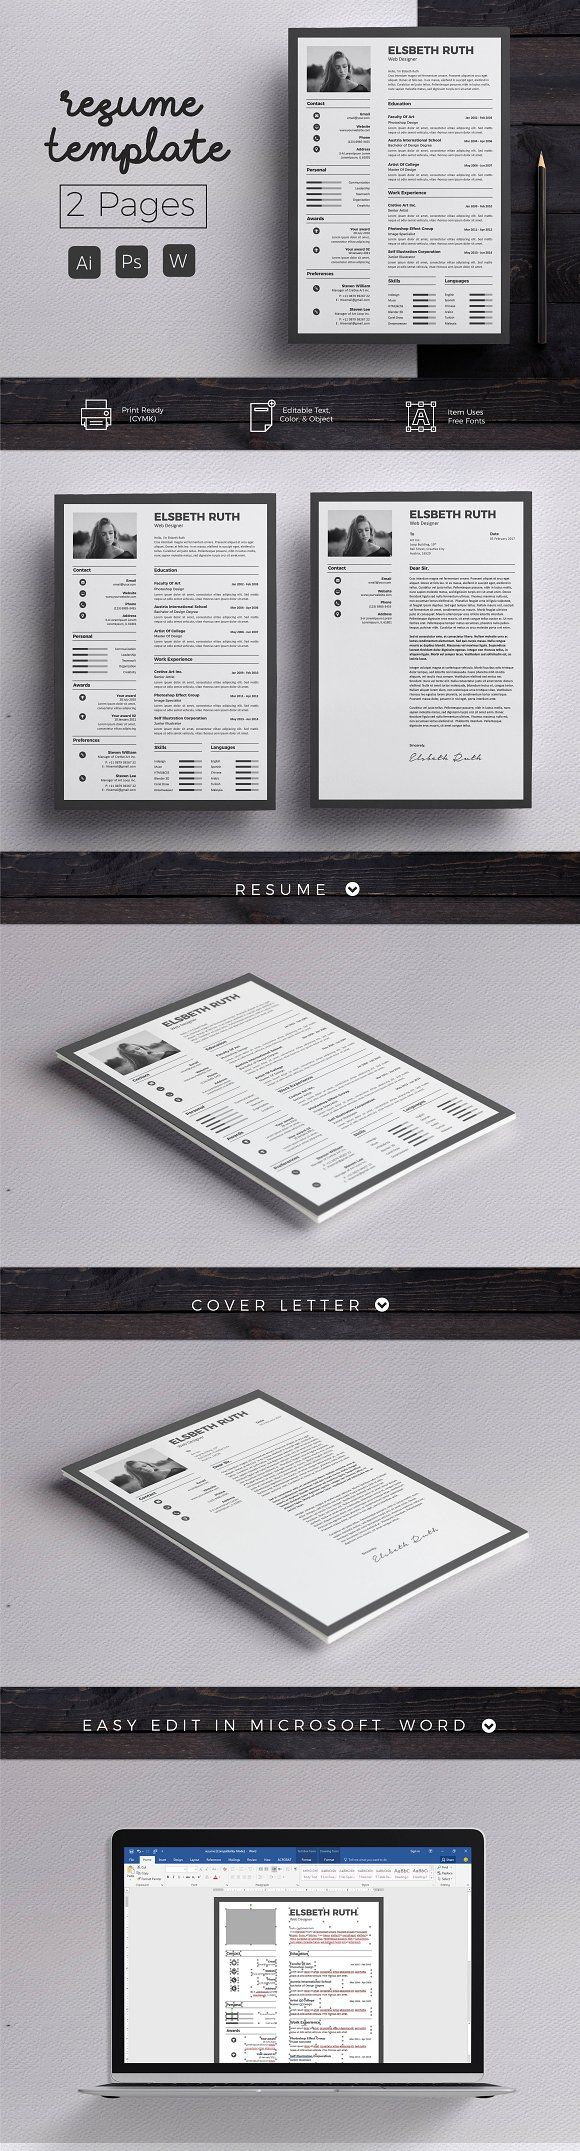 Functional Resume Template Microsoft%0A Resume  u     Cover Letter Template  Graphicsauthor